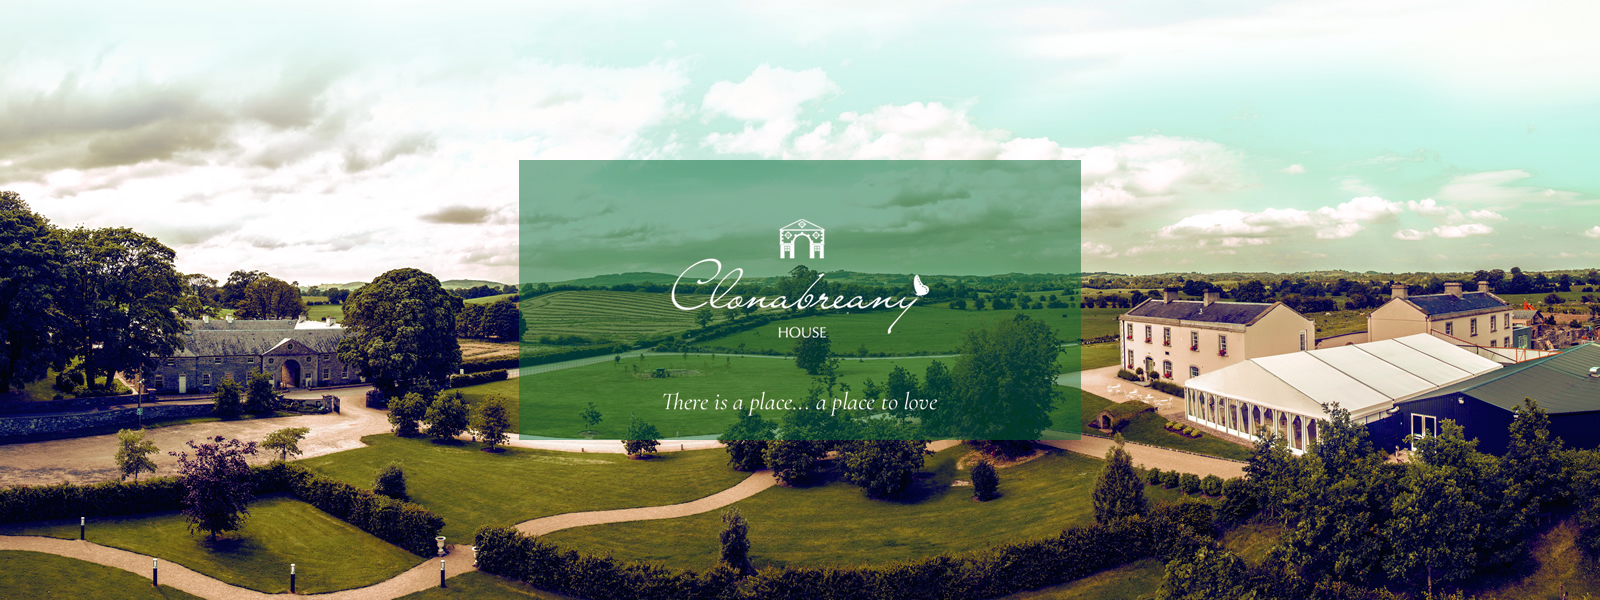 Clonabreany House Blog